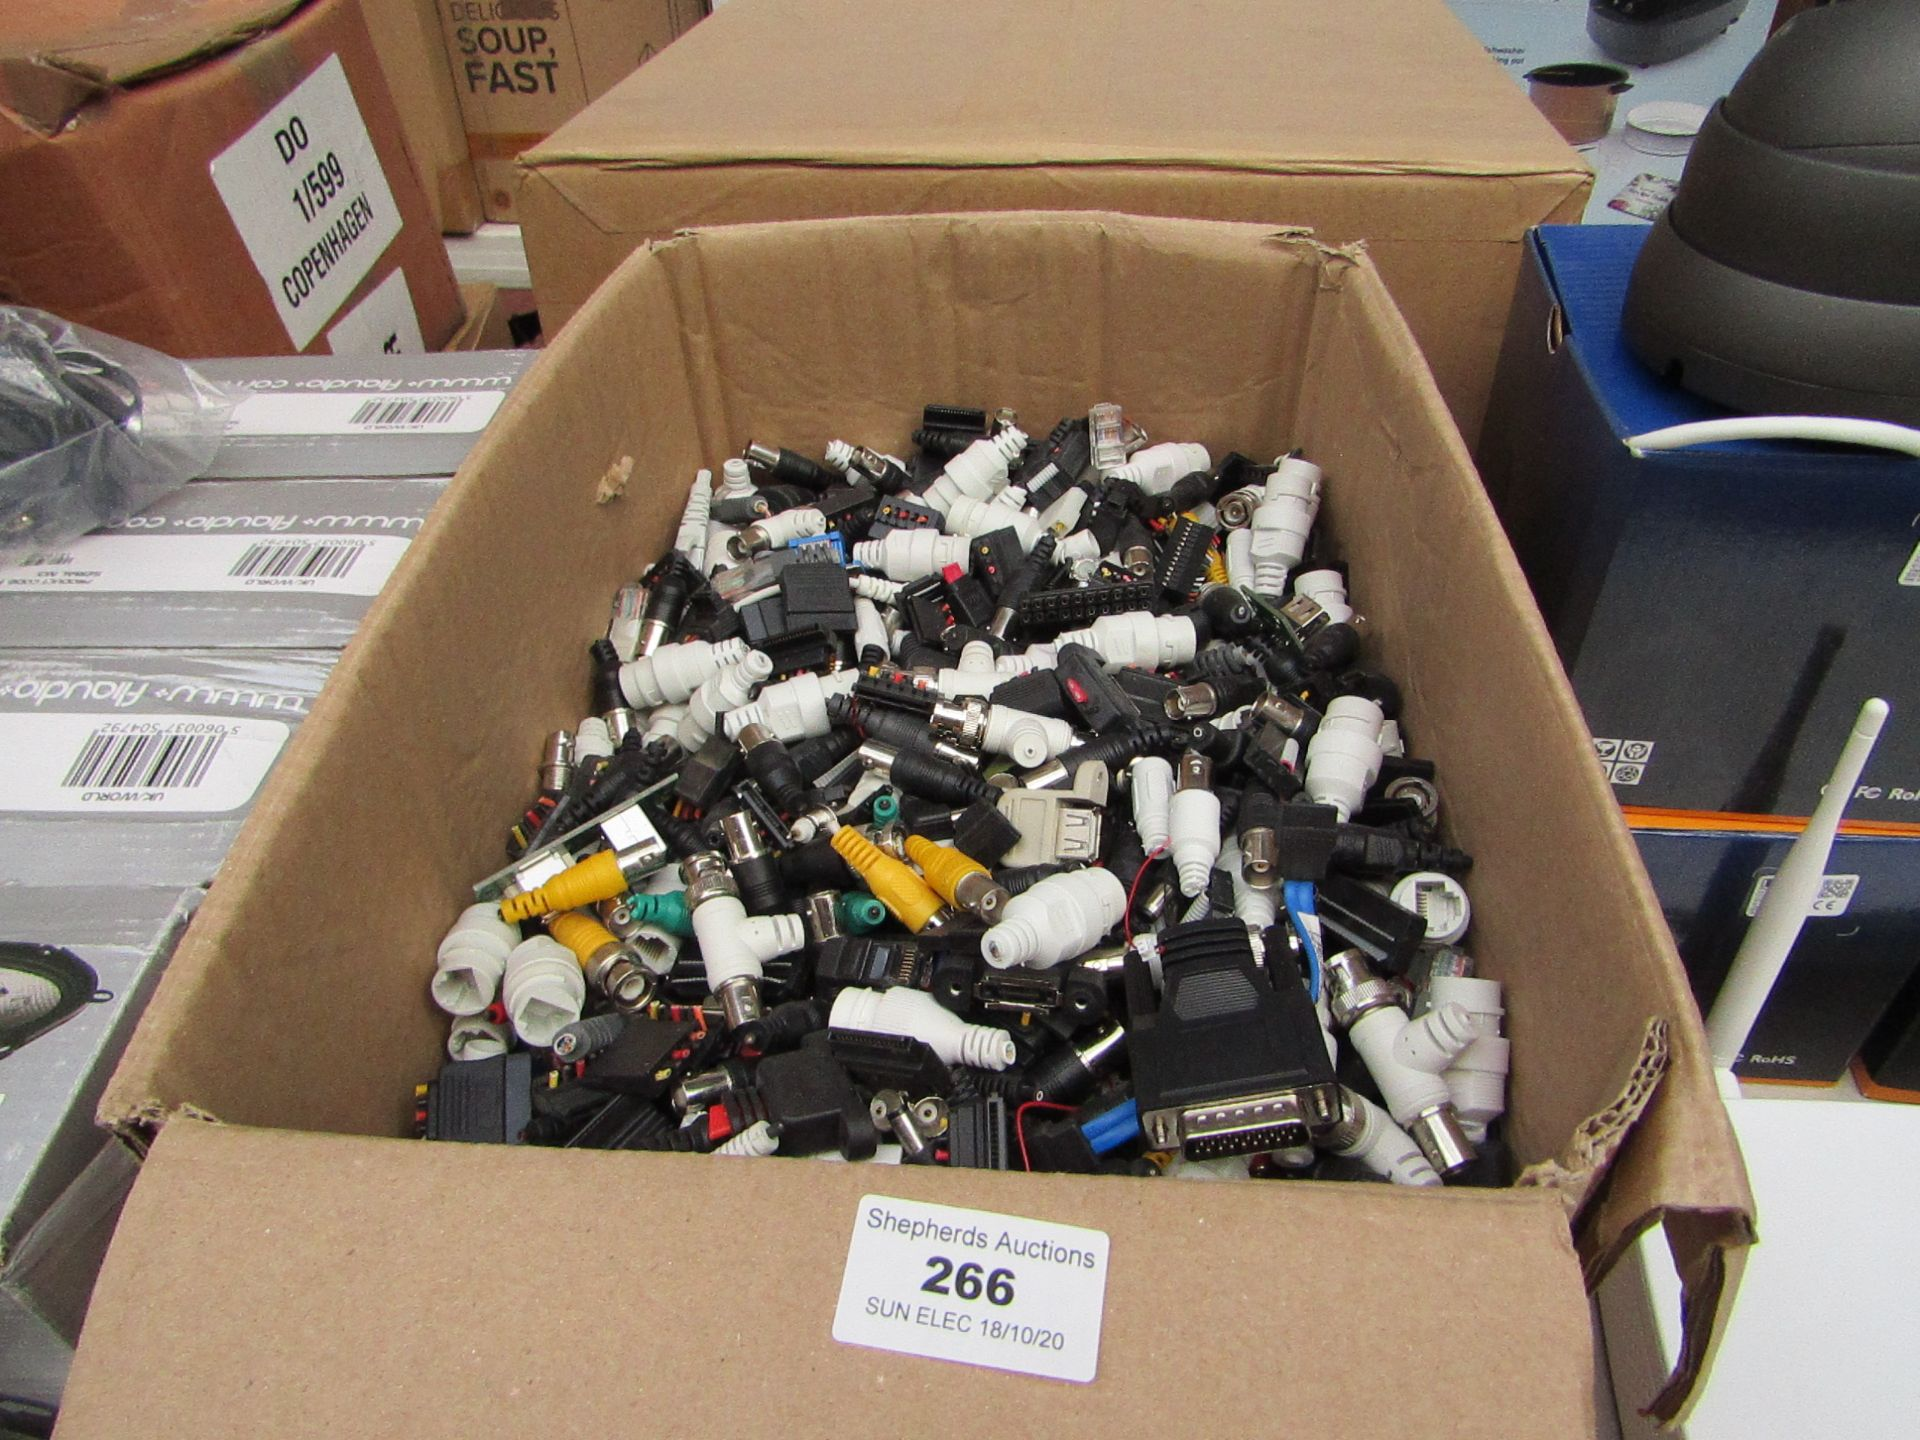 Lot 266 - Large box containing over 100x various power, data transfer and co-axial components. All unchecked.